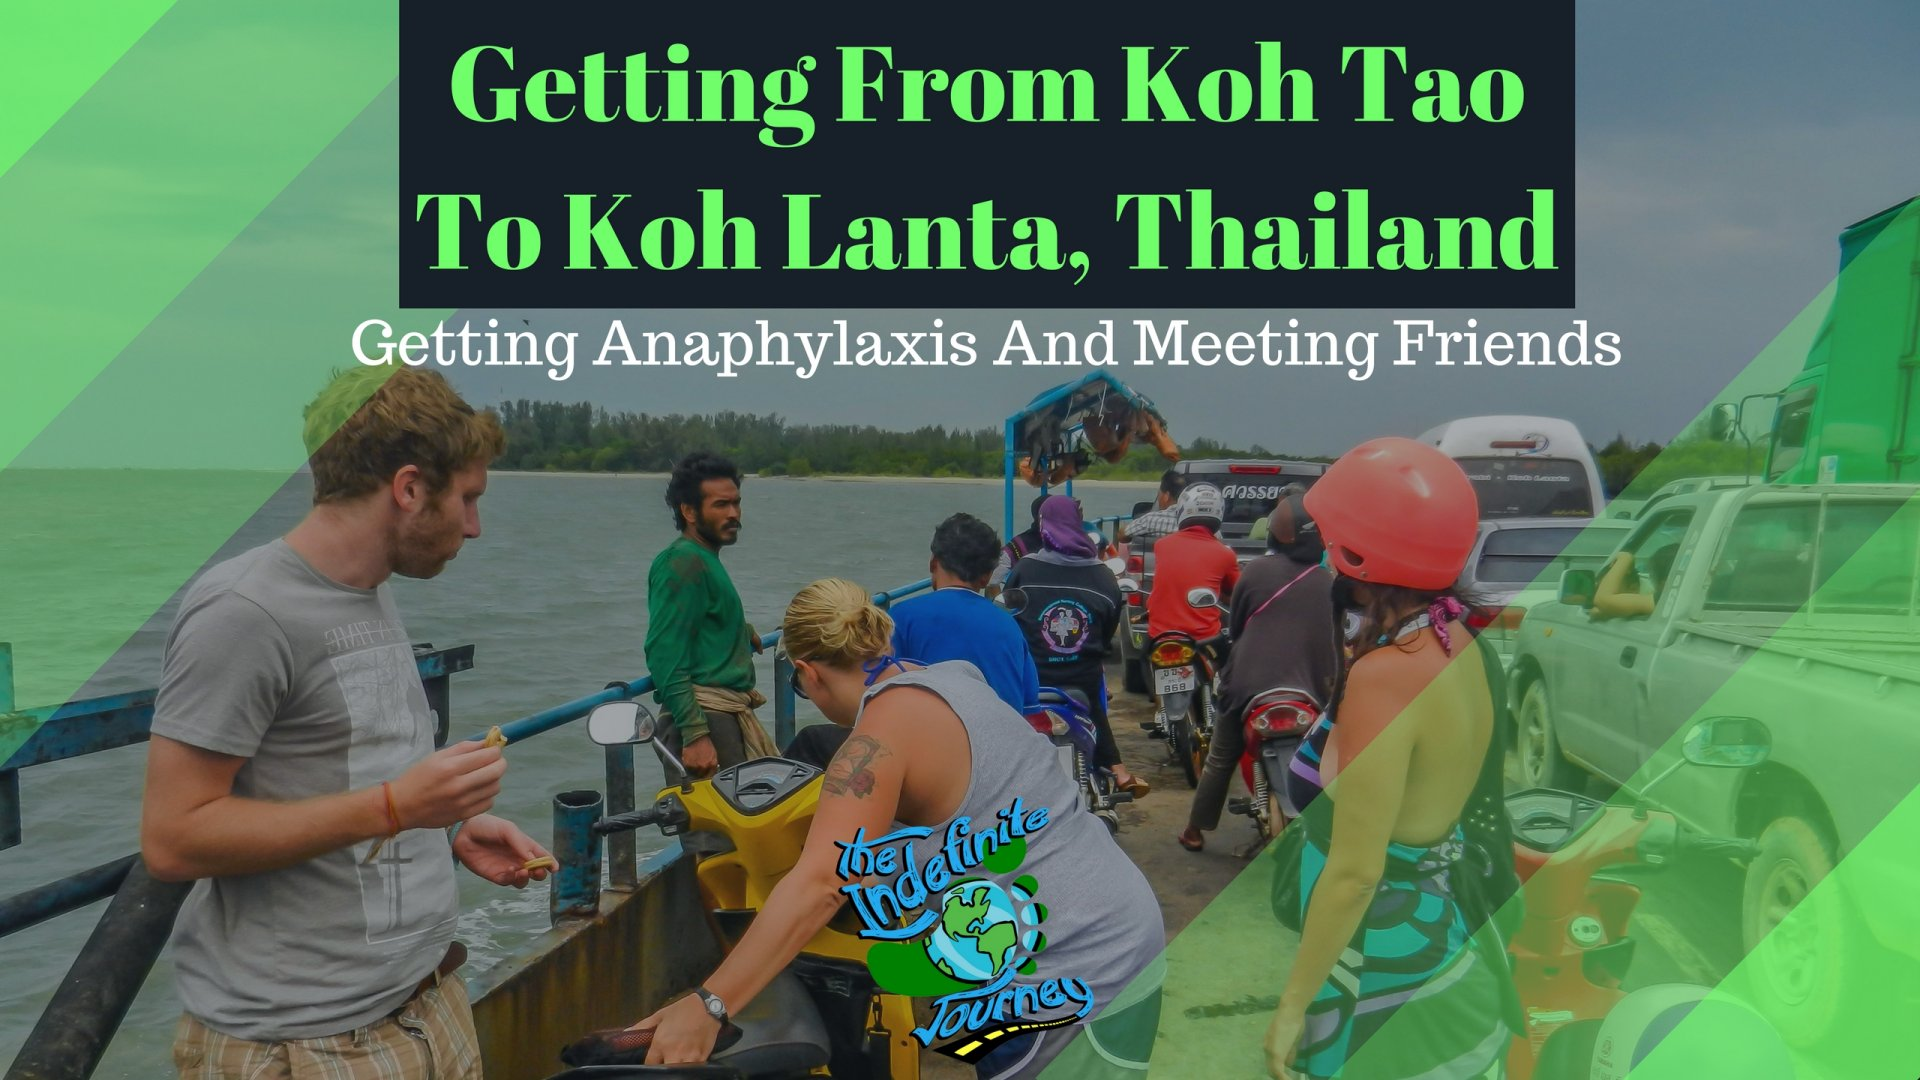 Getting From Koh Tao to Koh Lanta, Thailand -Getting Anaphylaxis And Meeting Friends